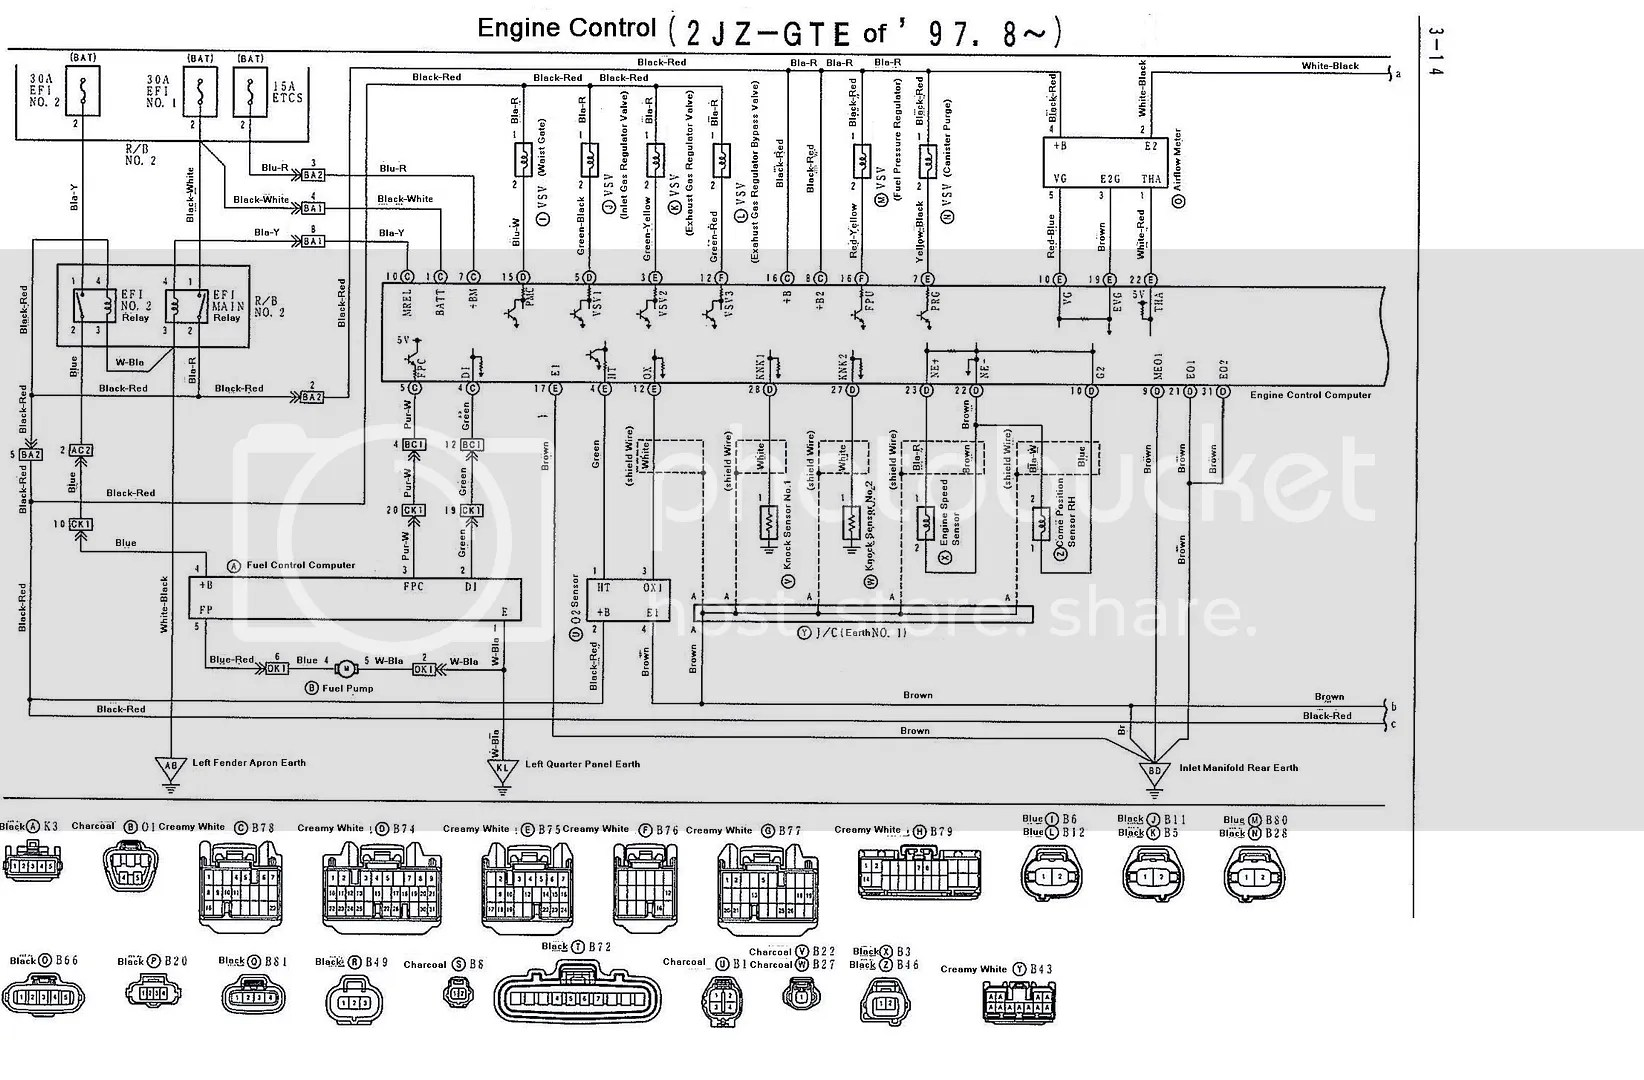 2jzgte Vvti Wiring Diagrams And Ecu Pinouts